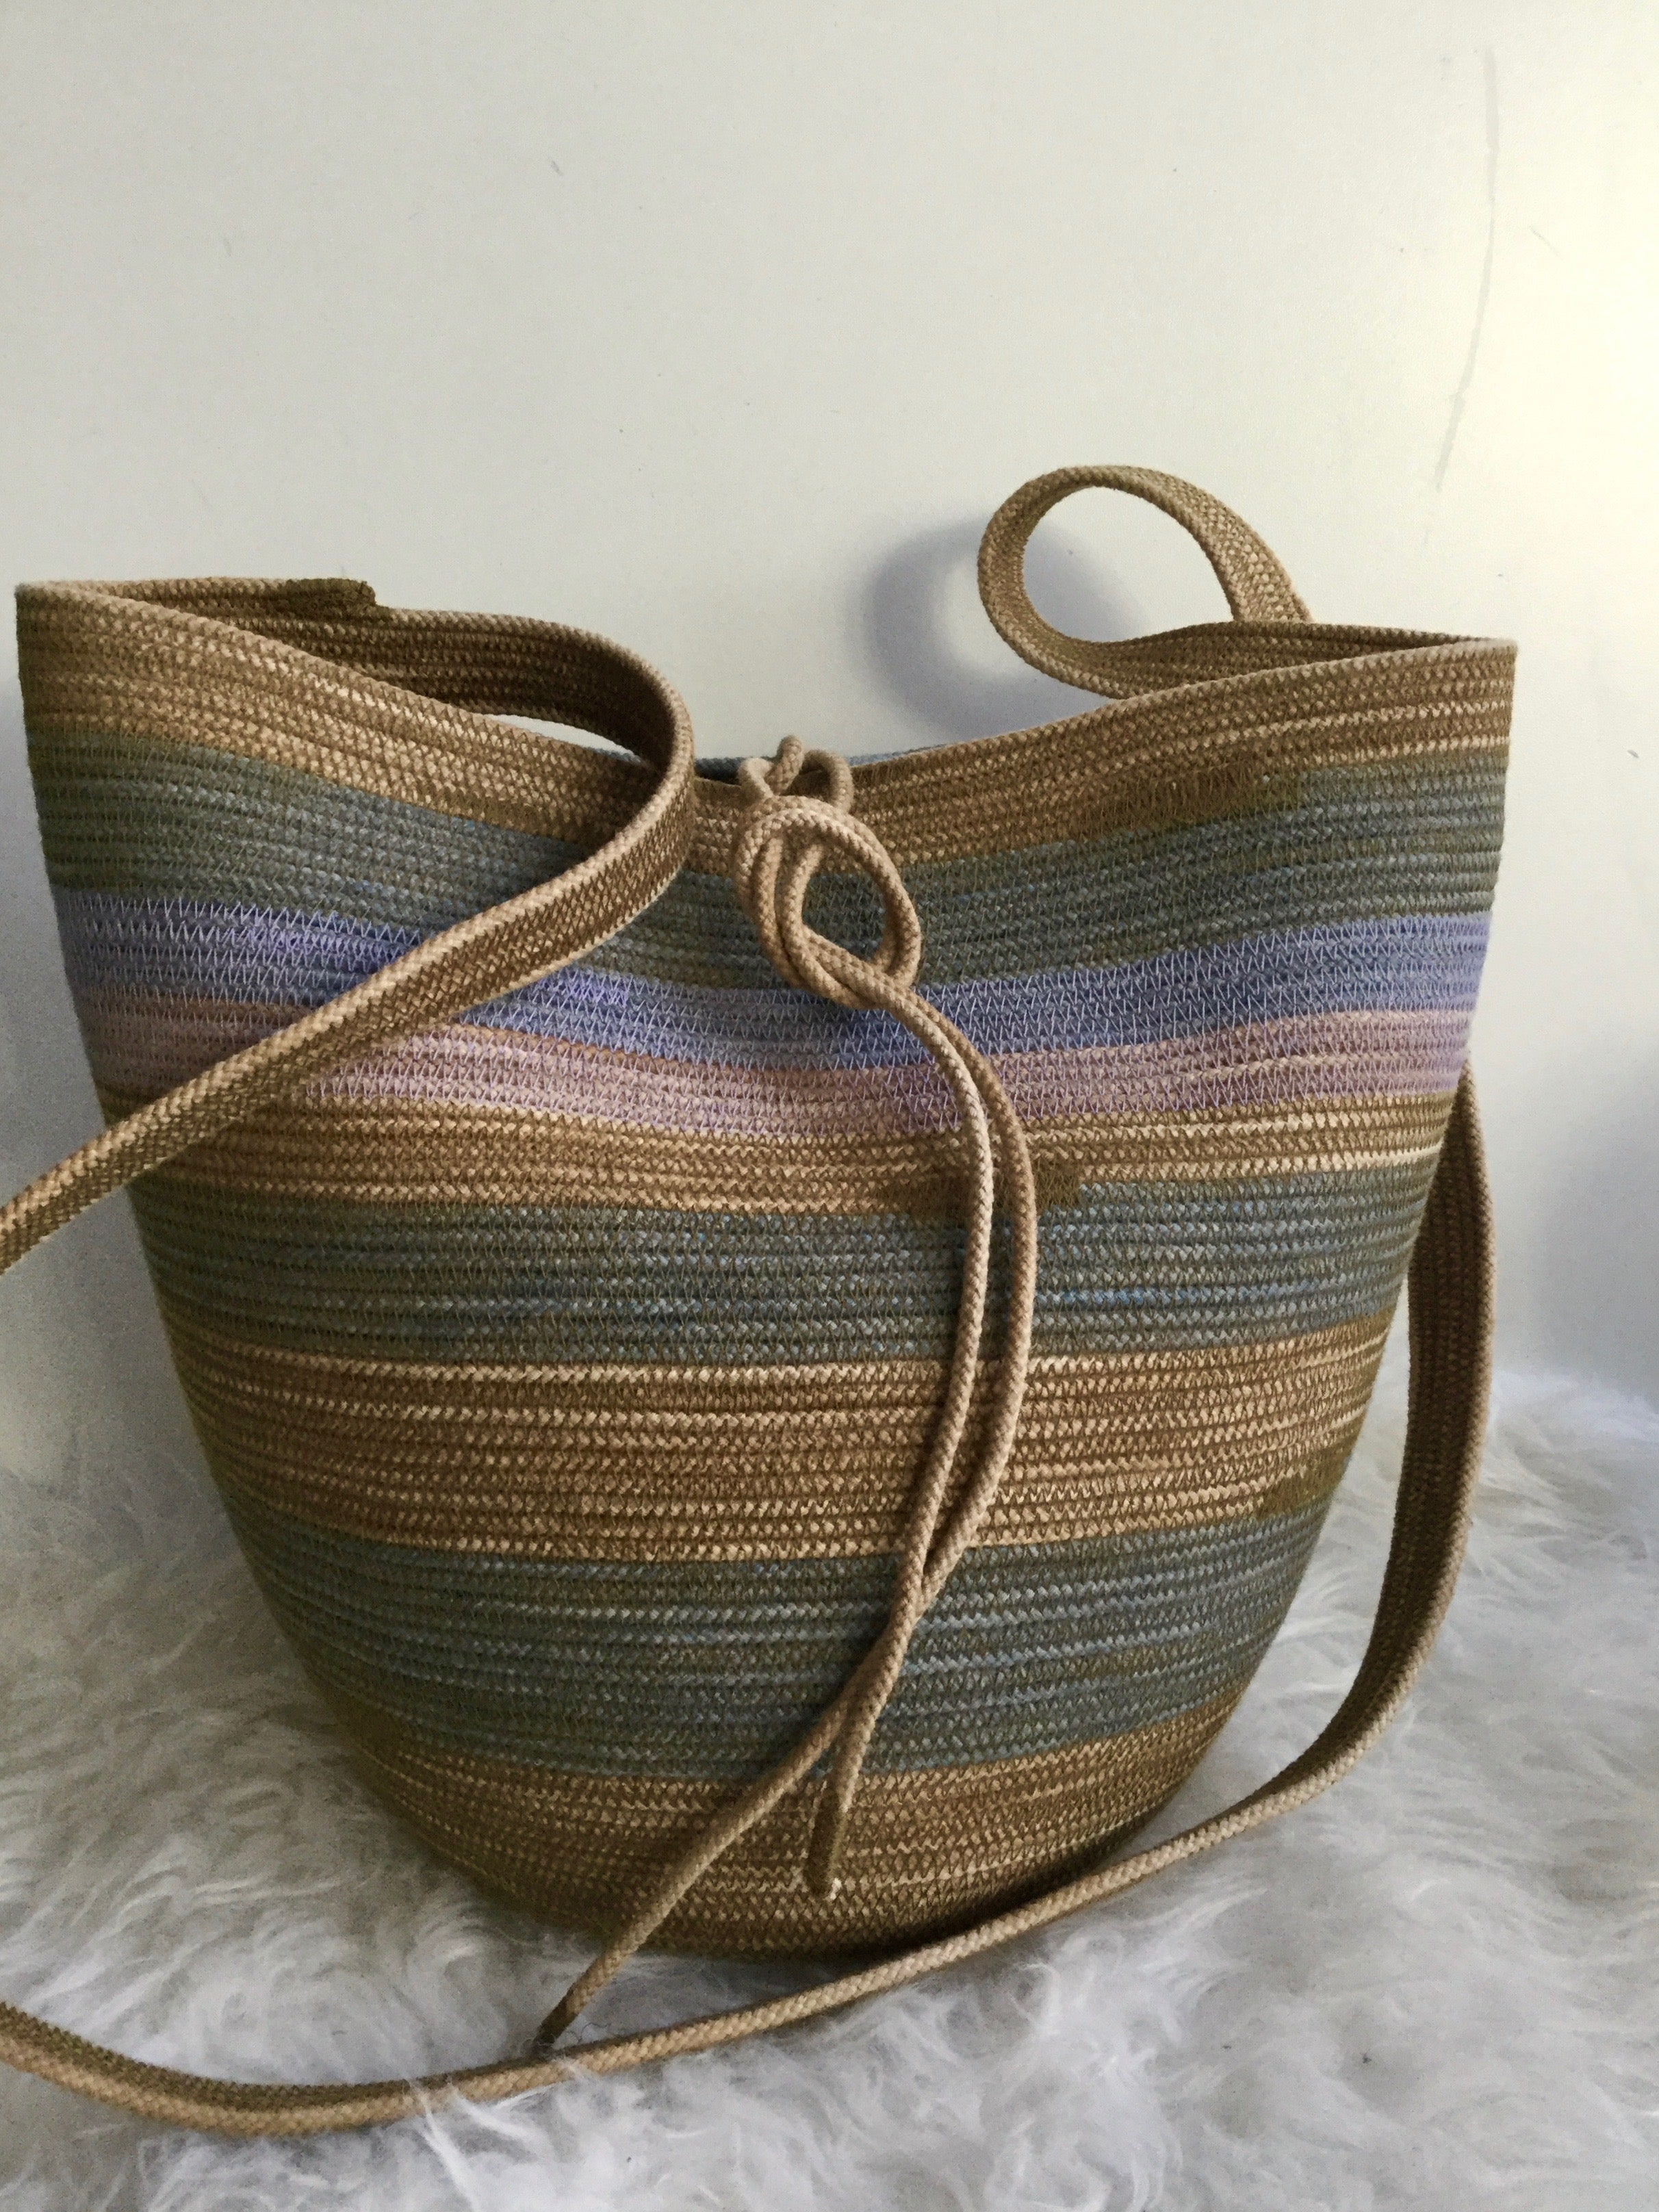 foraging rope basket